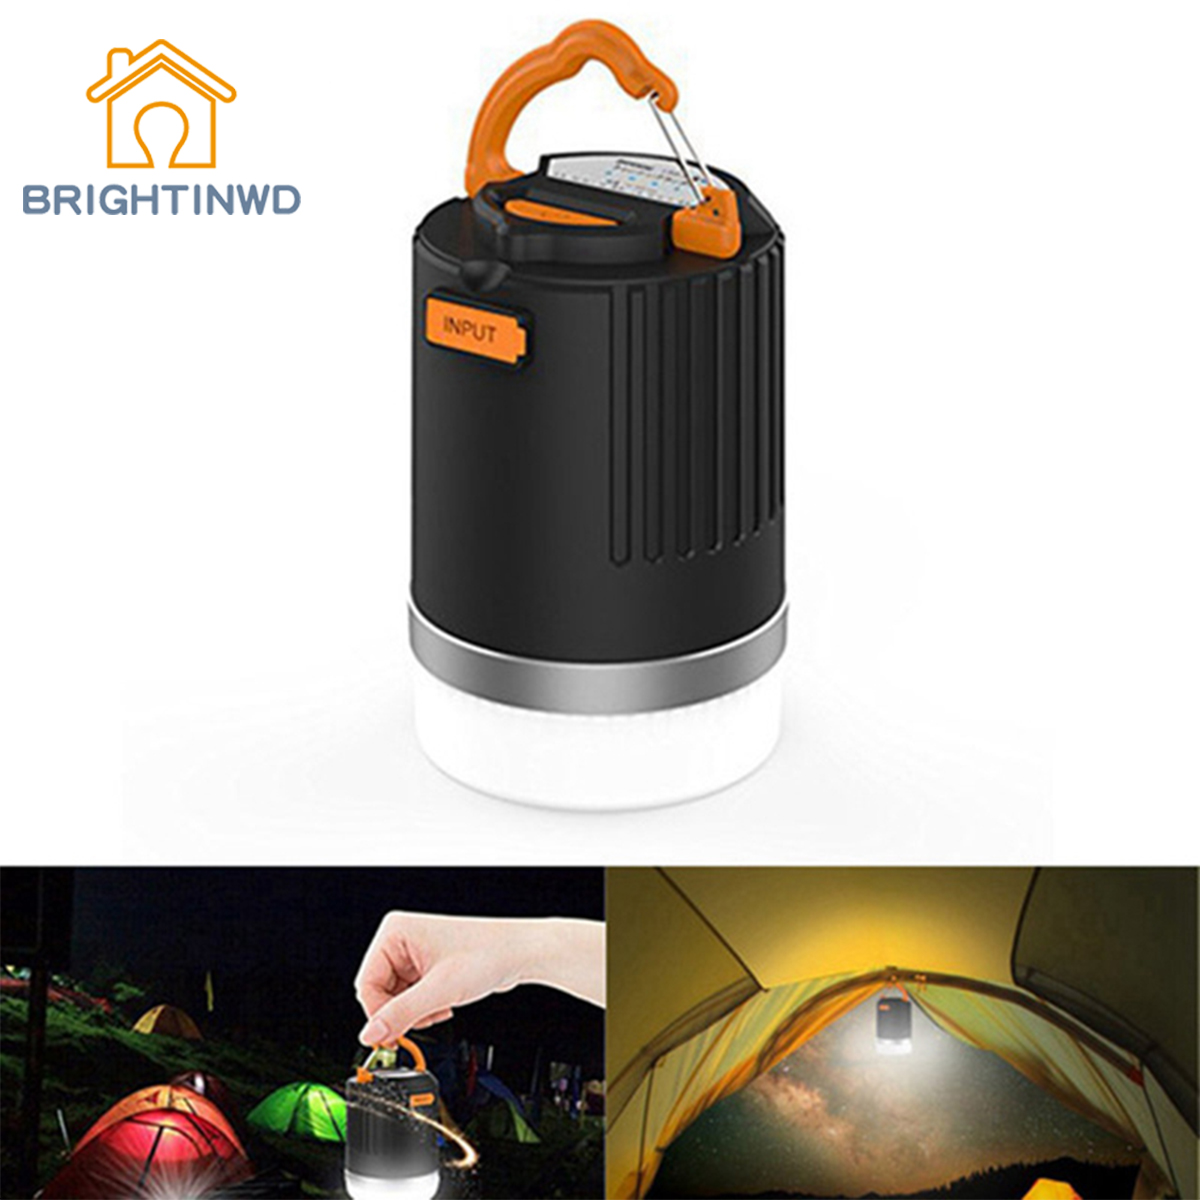 BRIGHTINWD Outdoor Camping Lantern Multifunction USB Rechargeable LED Light With 10400mAh Power Bank 440 Lumens Portable original romoss sense4 dual usb 10400mah power bank